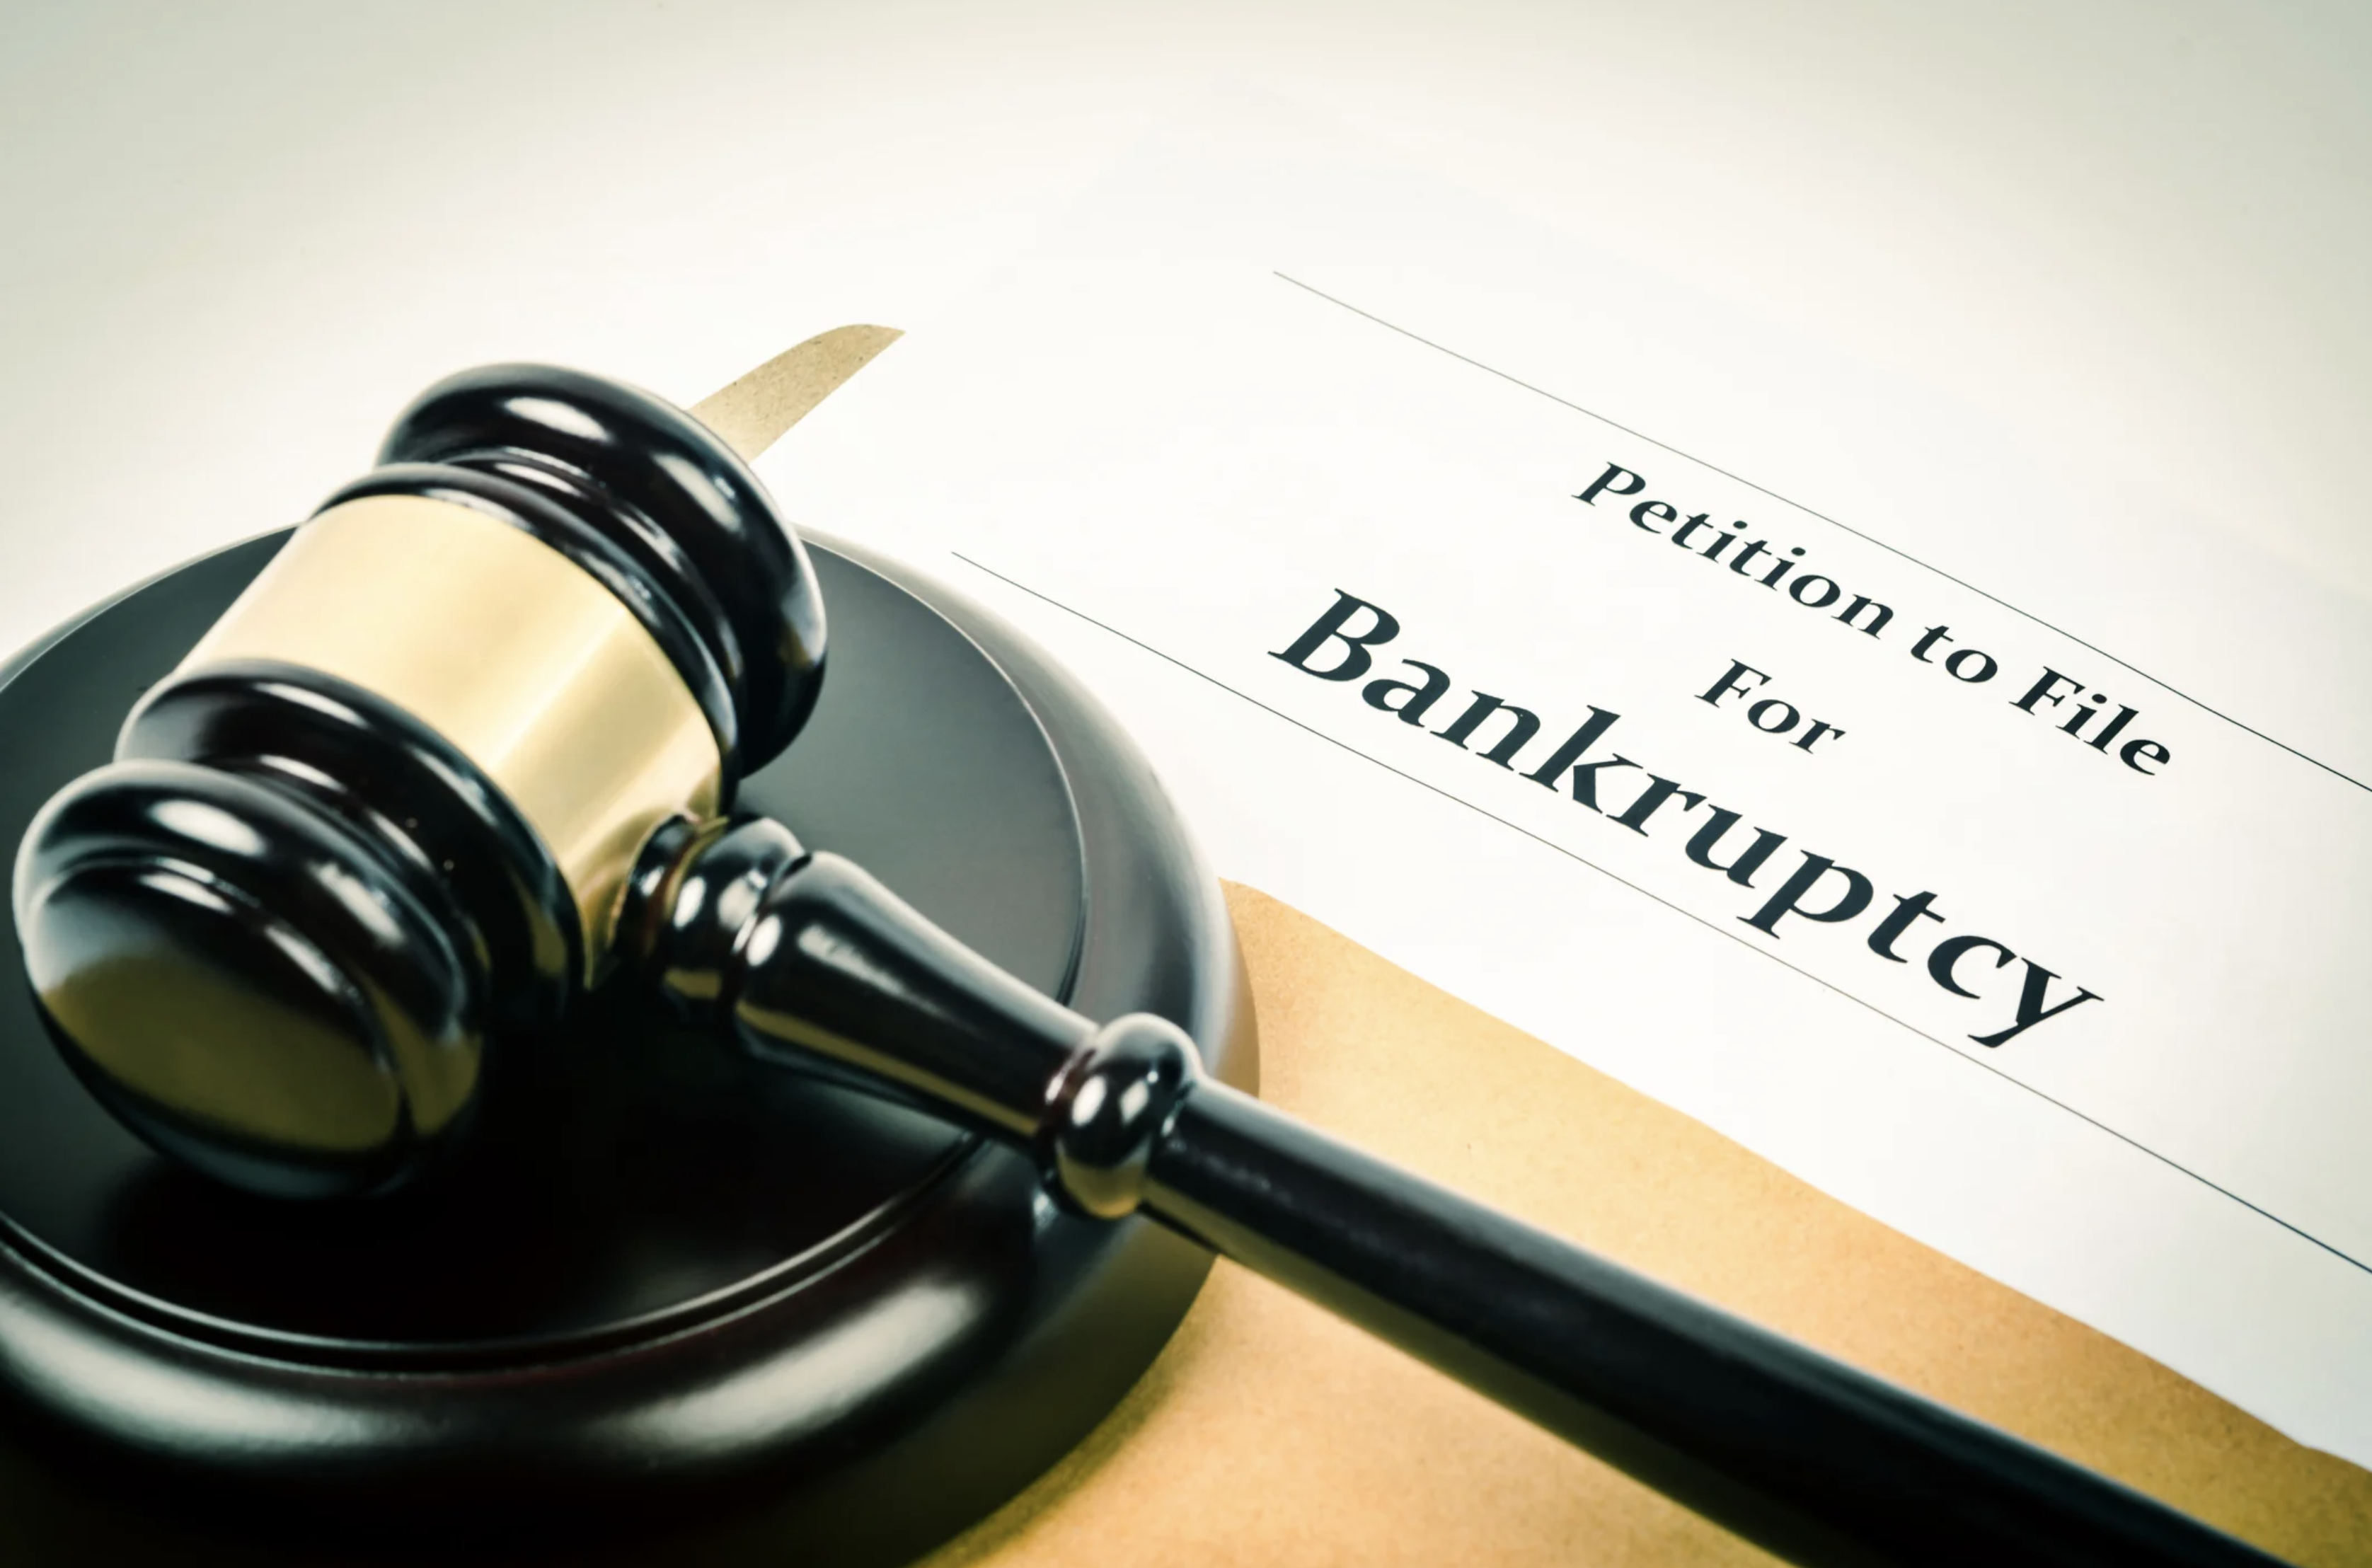 The impact of bankruptcy on intellectual property rights